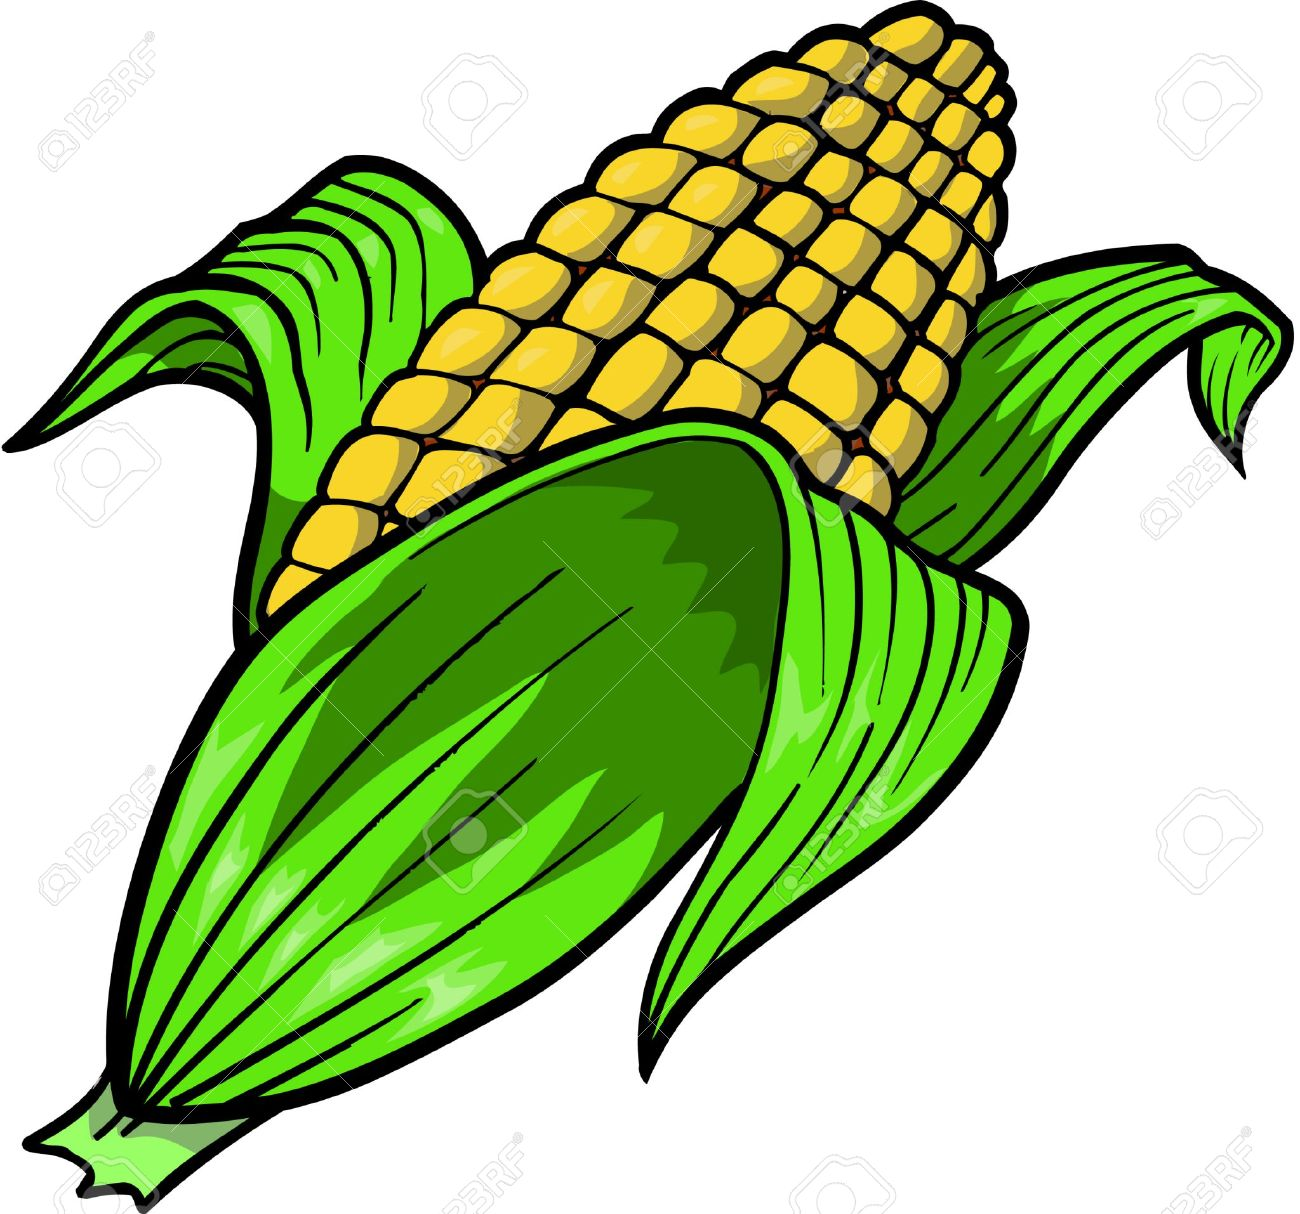 Corn clipart #12, Download drawings